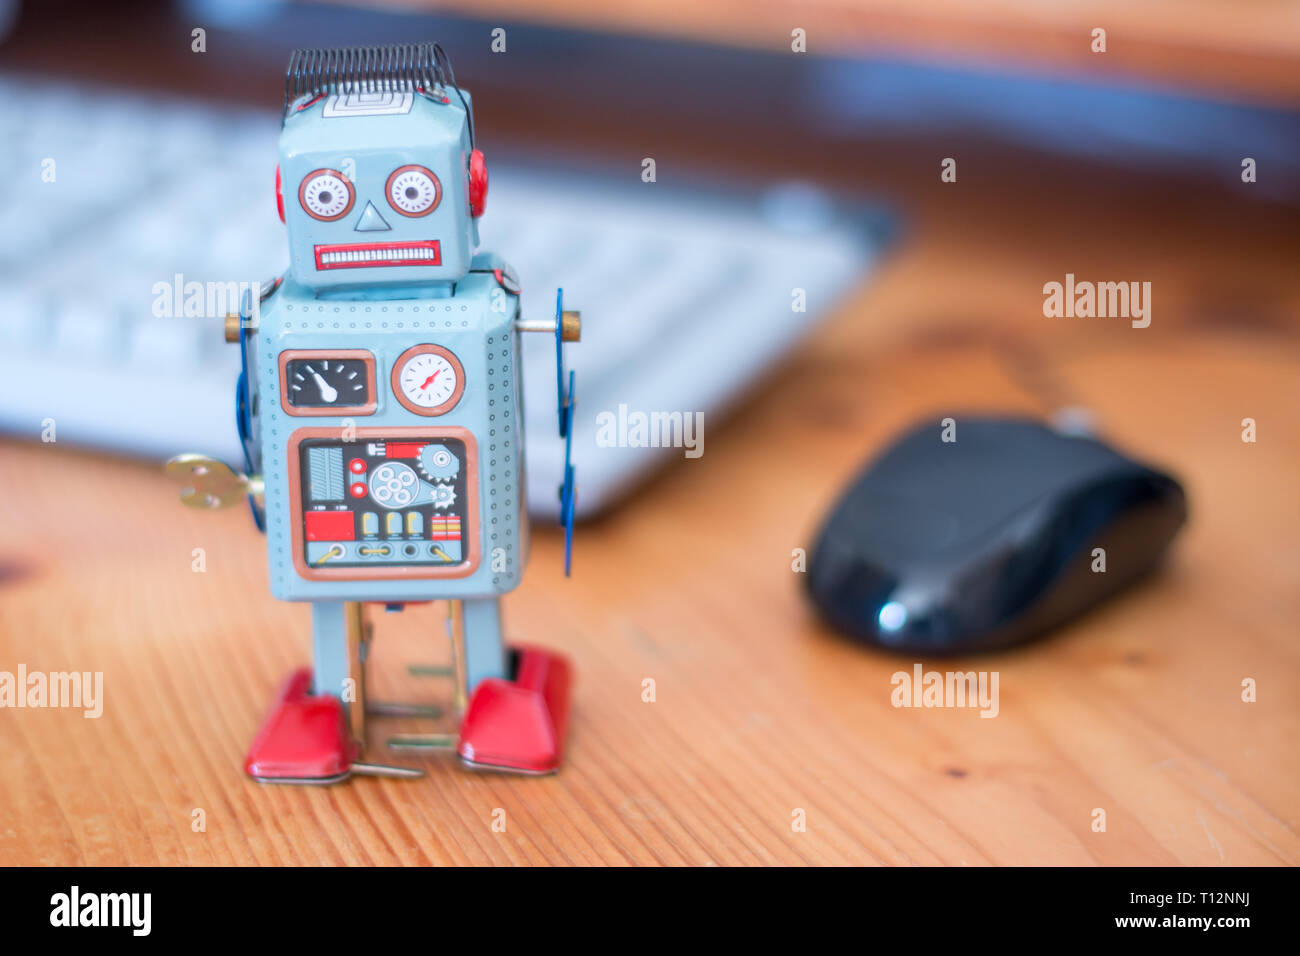 Chat Bot Stock Photos & Chat Bot Stock Images - Alamy